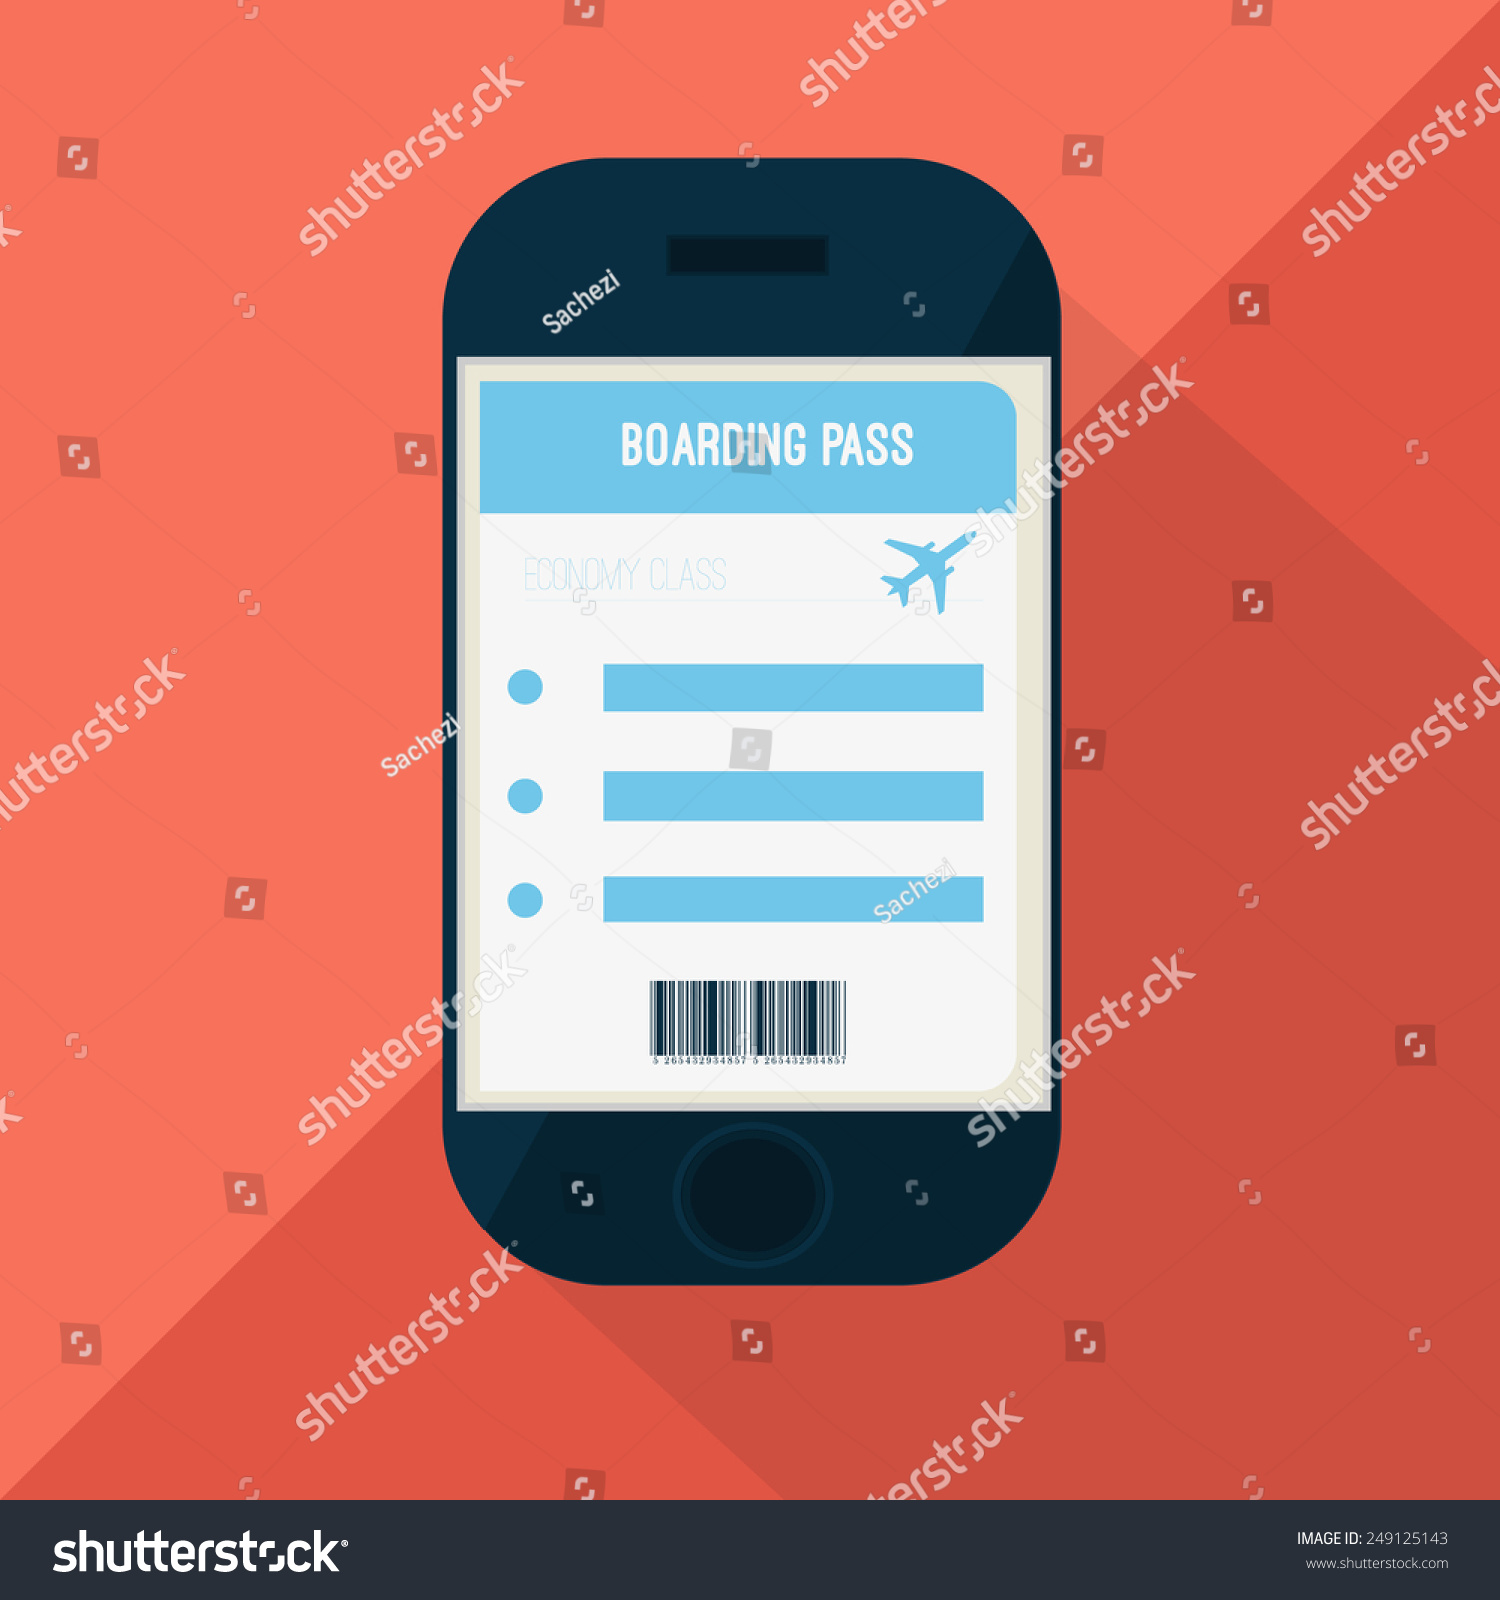 how to save mobile boarding pass on pass 2wallet